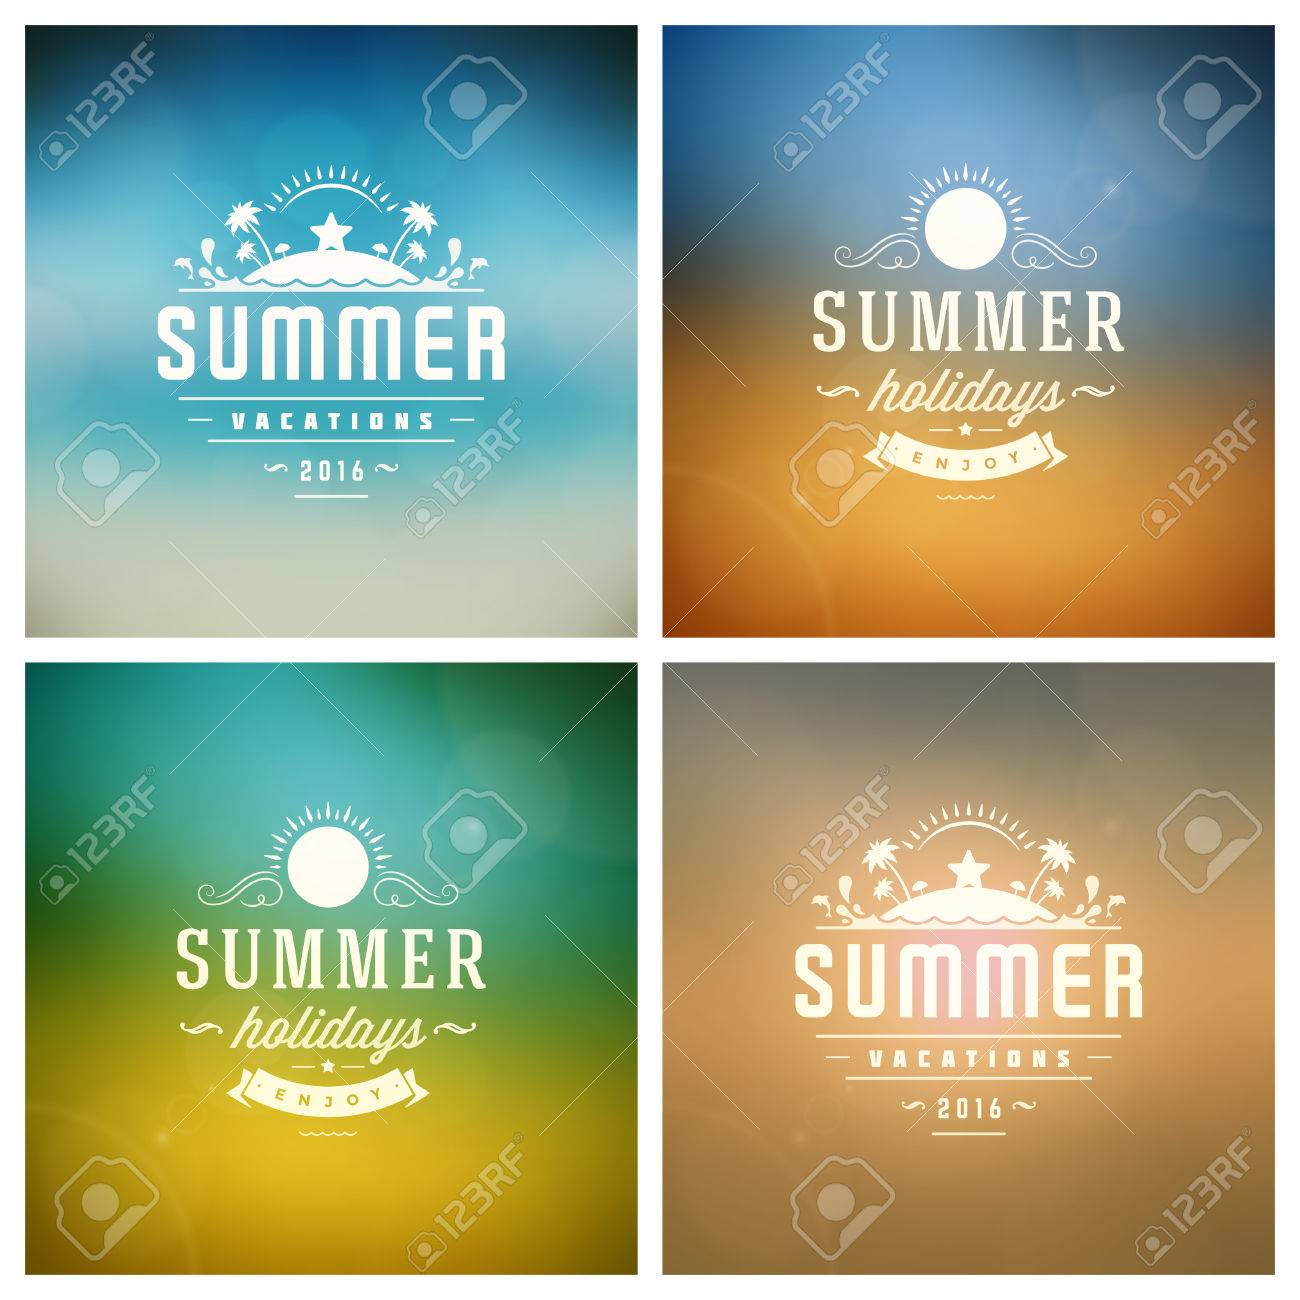 Summer Vector Retro Typography Set. Summer holidays messages and Illustrations for Greeting Cards, Party Posters or Flyers Design Vector Backgrounds. Blurred Landscape and Sky with Sun Backdrops. - 56013518